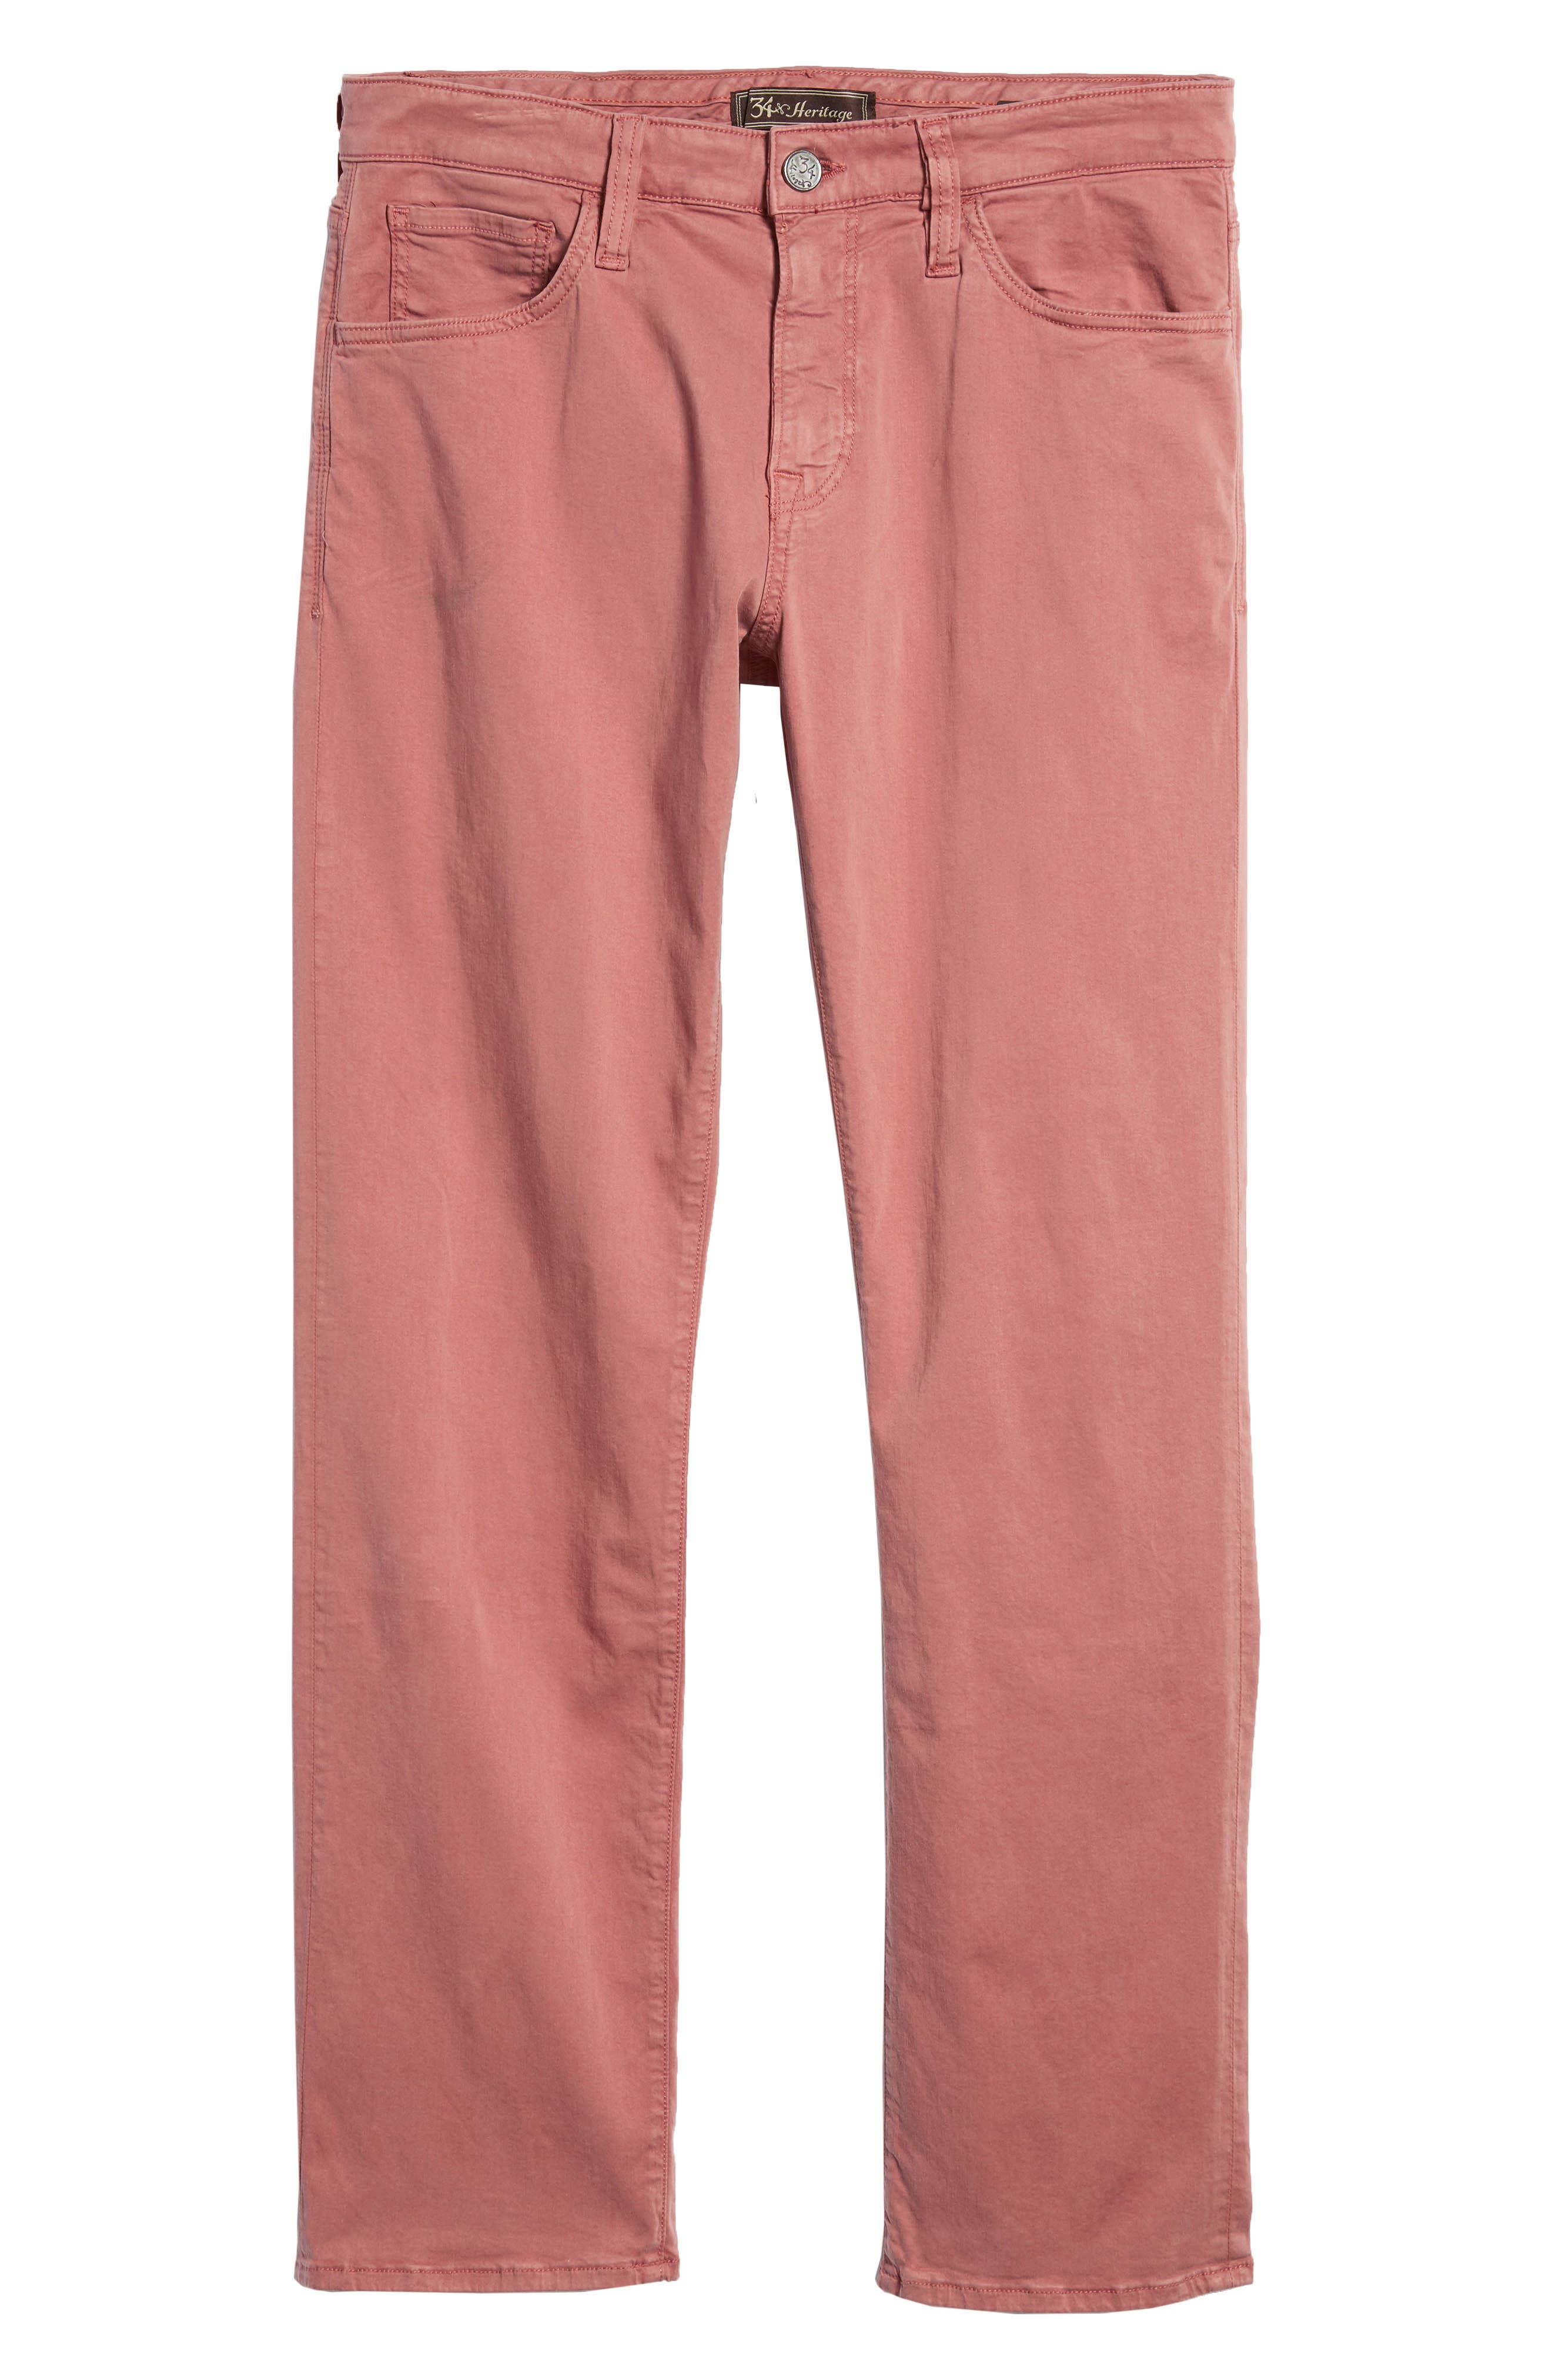 Courage Straight Leg Twill Pants,                             Alternate thumbnail 6, color,                             Brick Twill